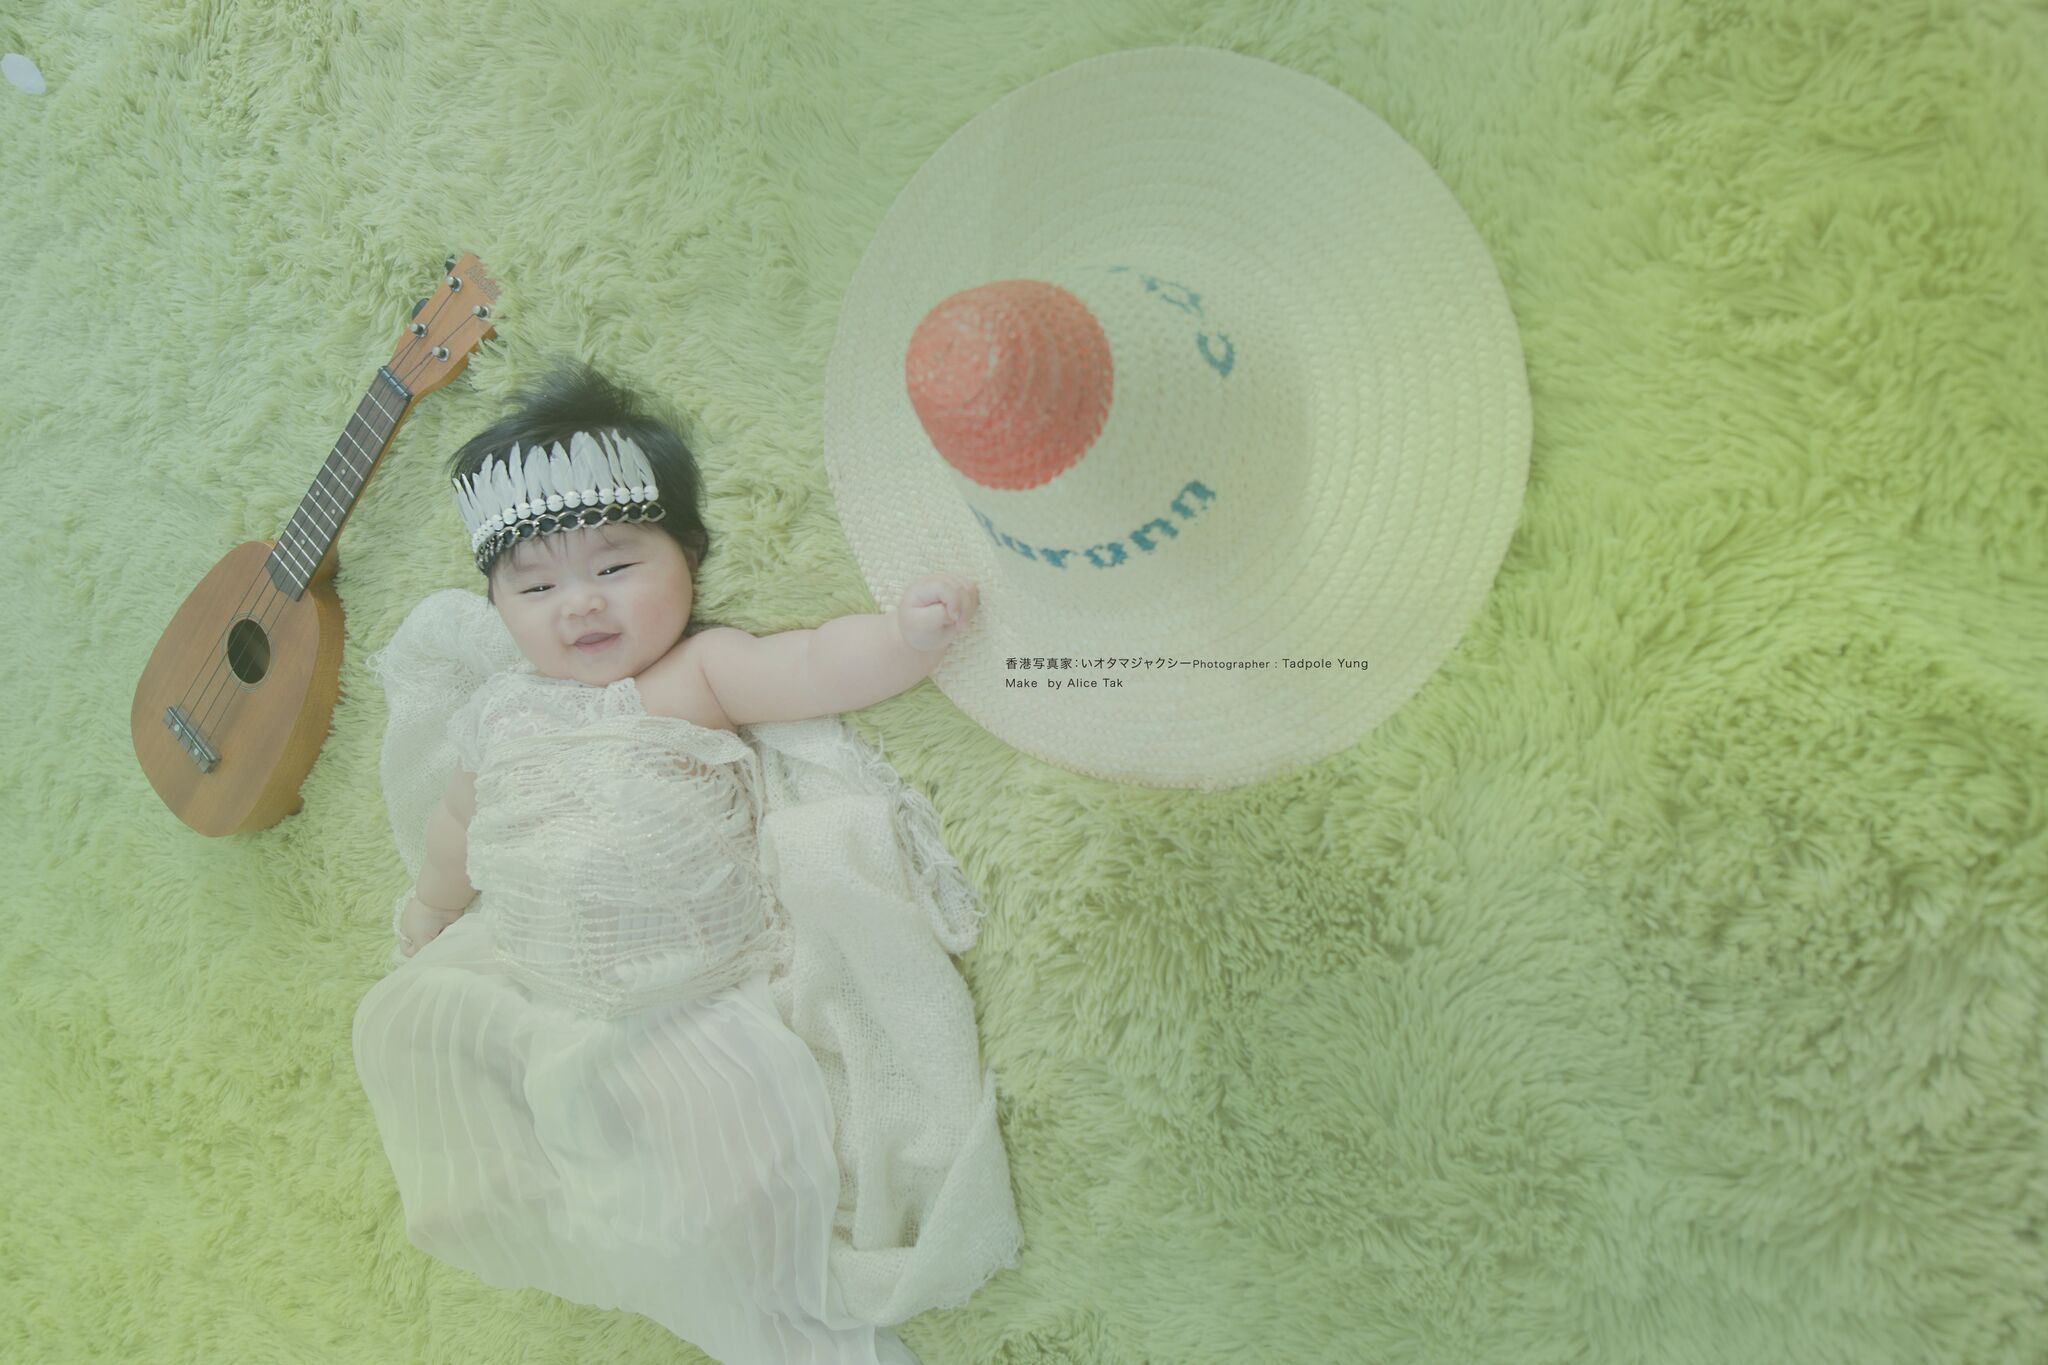 Kid newborn baby girl portrait happy life photographer by tadpole yung tadpole studio kennedytown hong kong happy baby fat cute baby